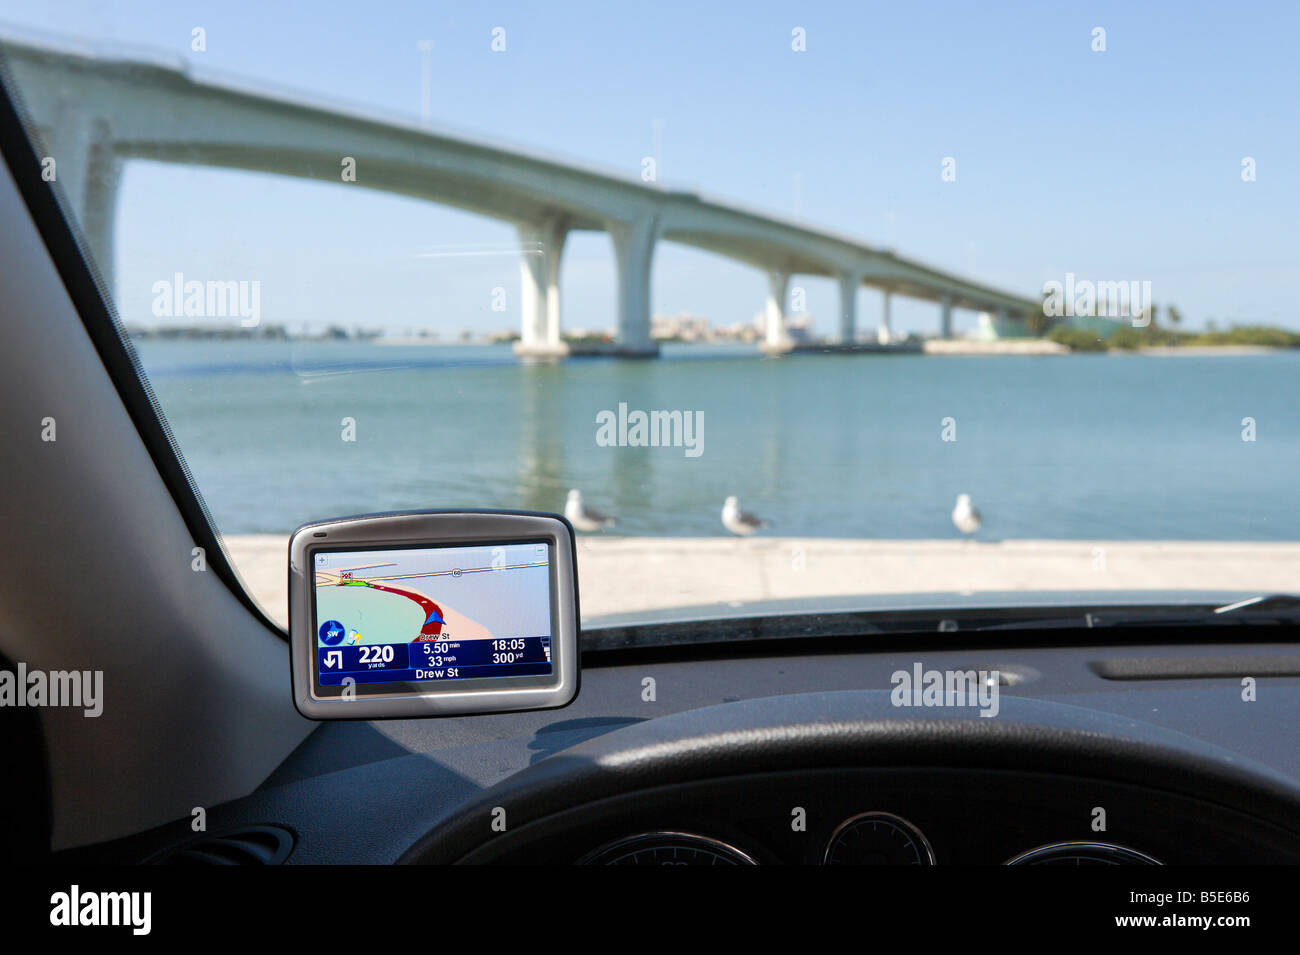 GPS Satellite Navigation System on the windscreen of a car in Clearwater, Florida, USA - Stock Image